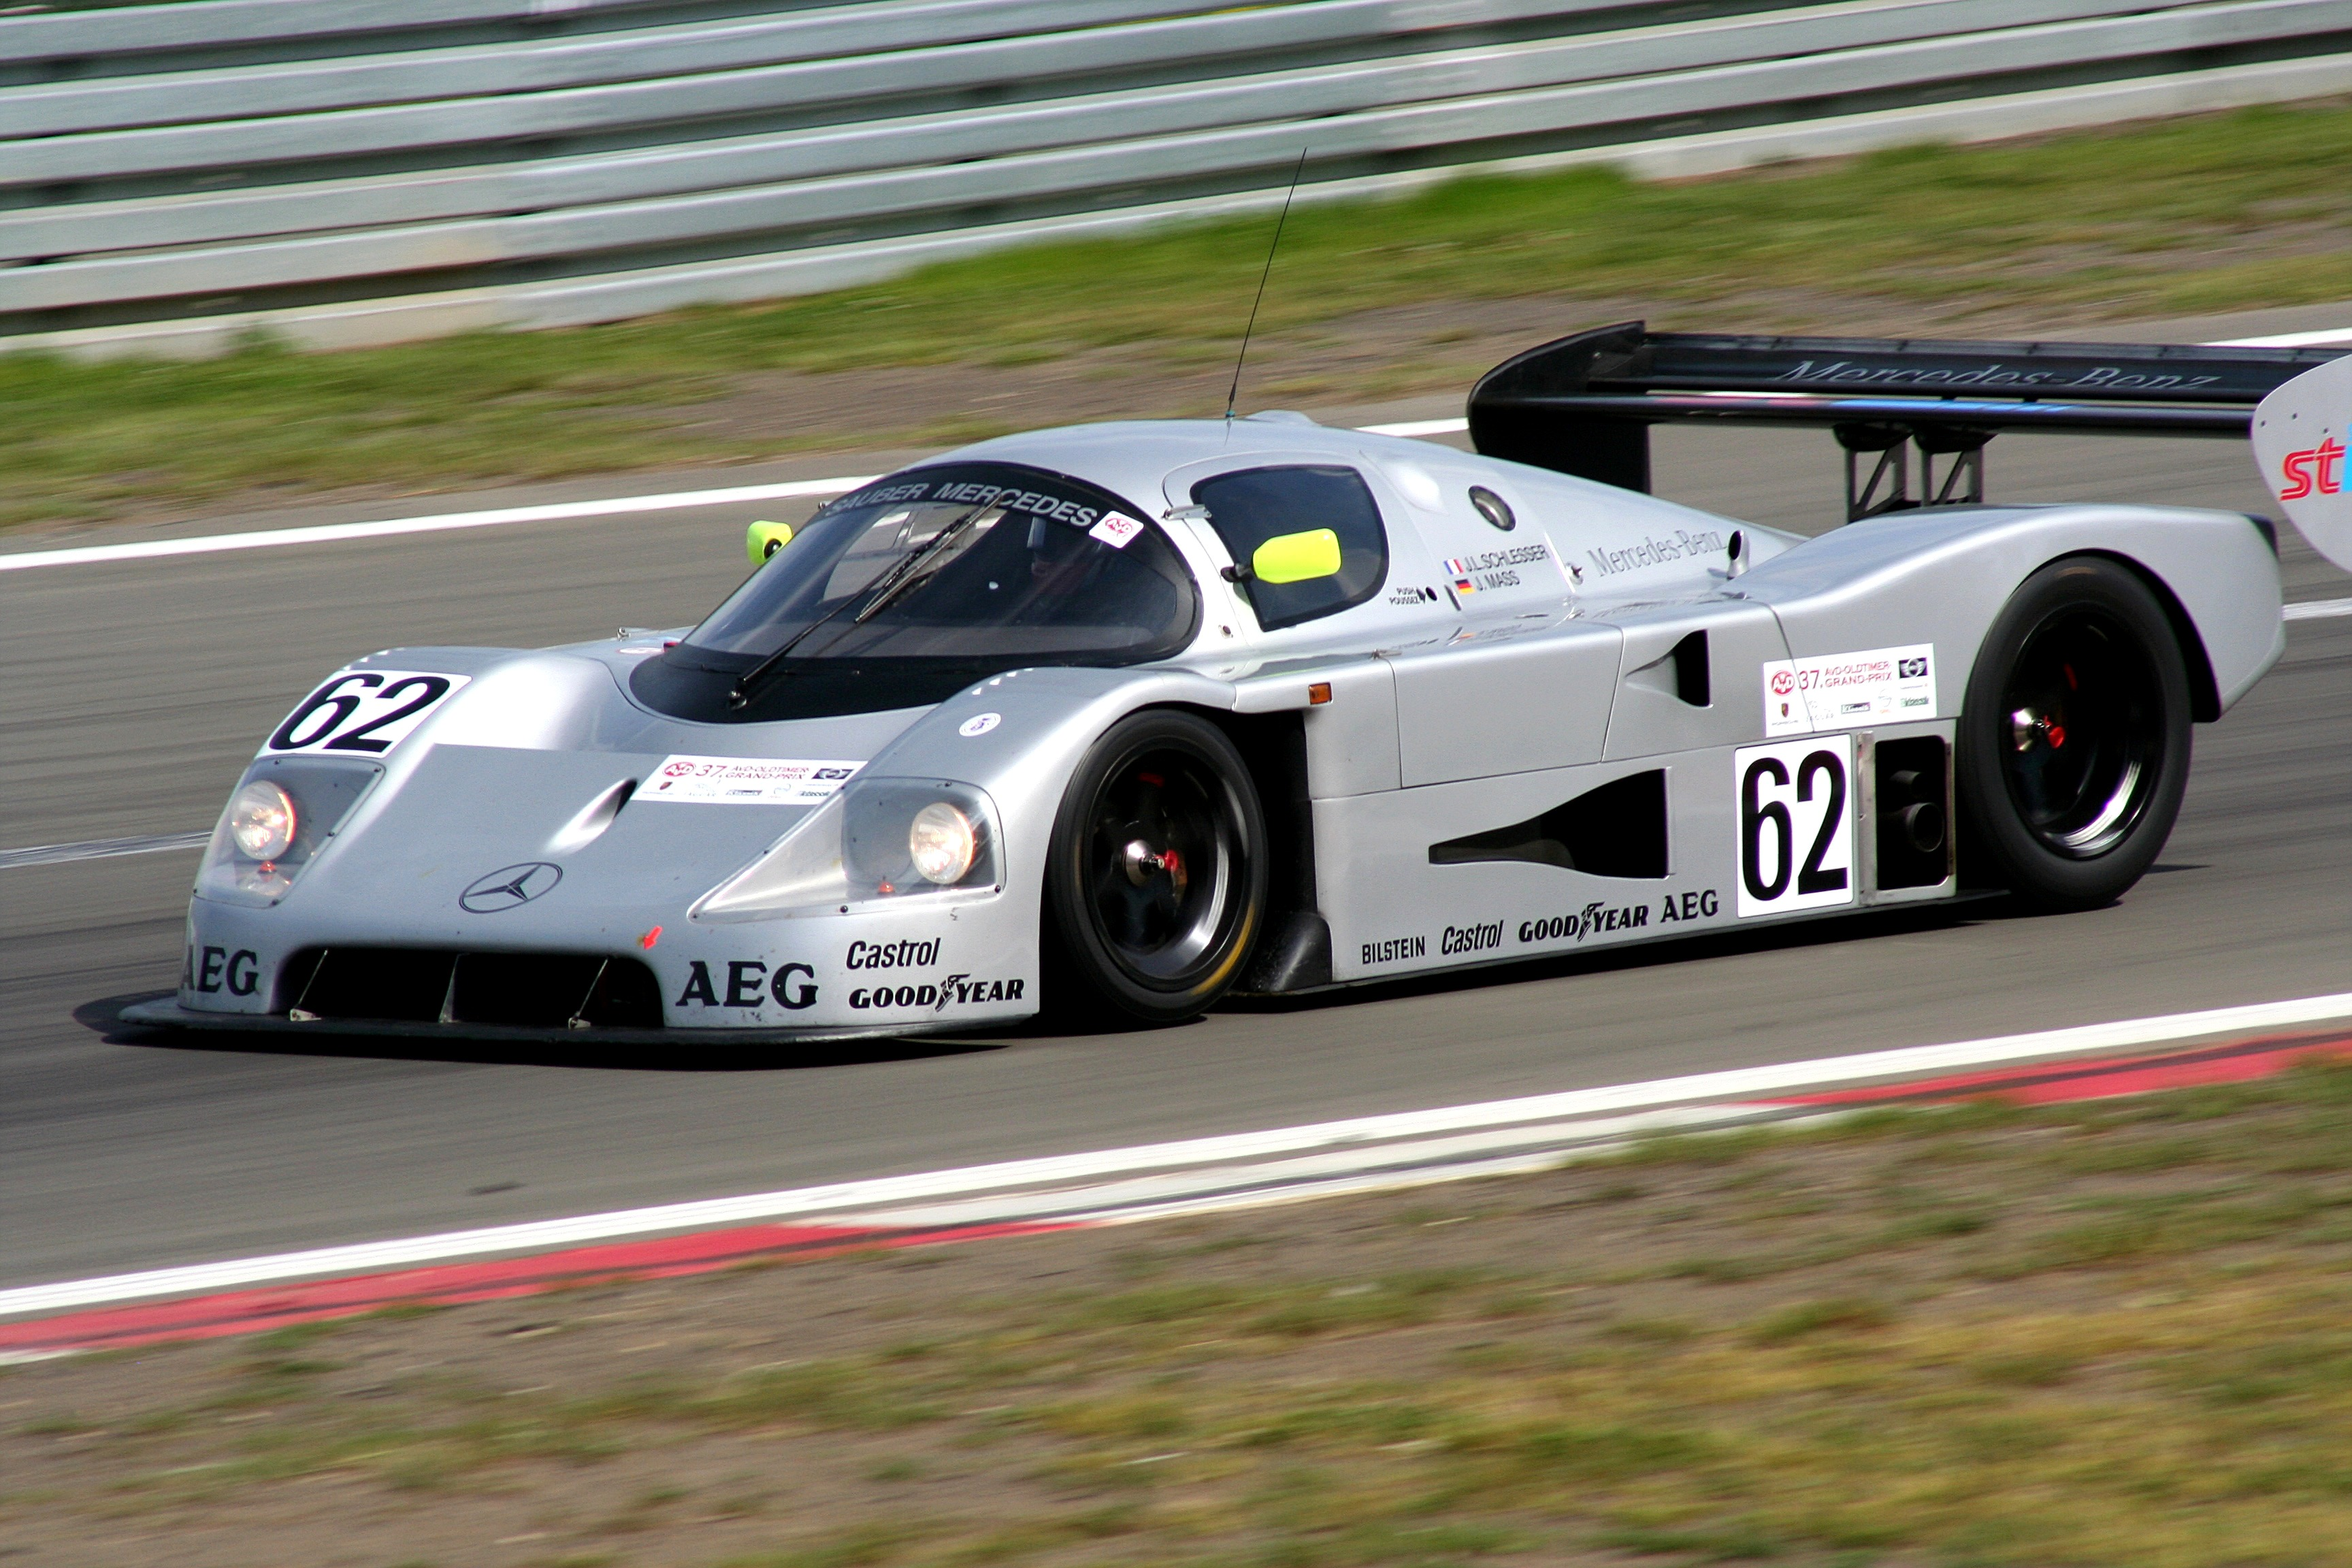 http://upload.wikimedia.org/wikipedia/commons/b/bb/Sauber-Mercedes_C9,_Bj._1988_(2009-08-07_Sp).jpg